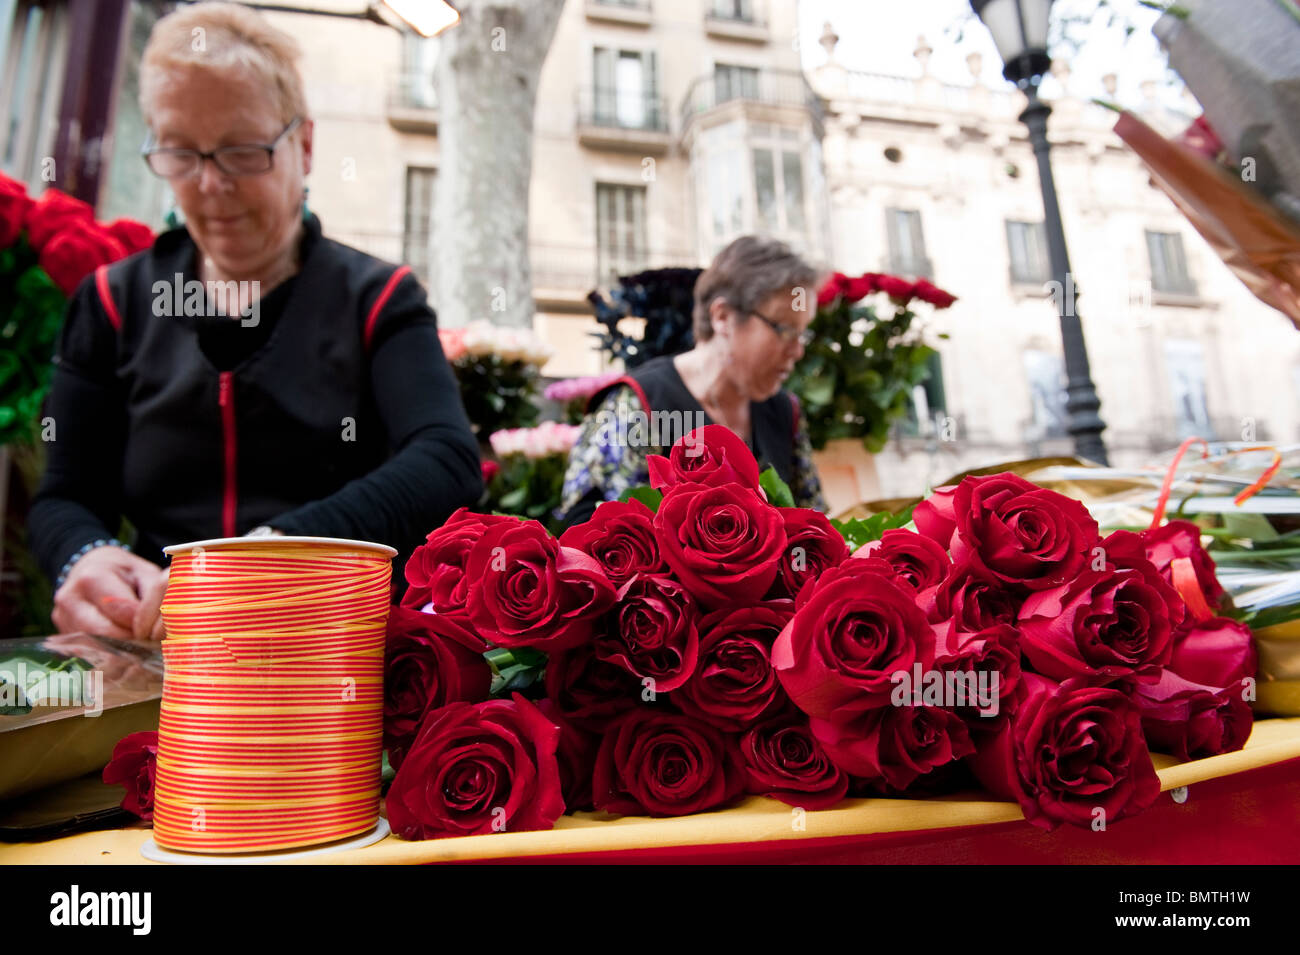 View of to woman selling roses in Las Ramblas for the traditional celebration of Sant Jordi. - Stock Image